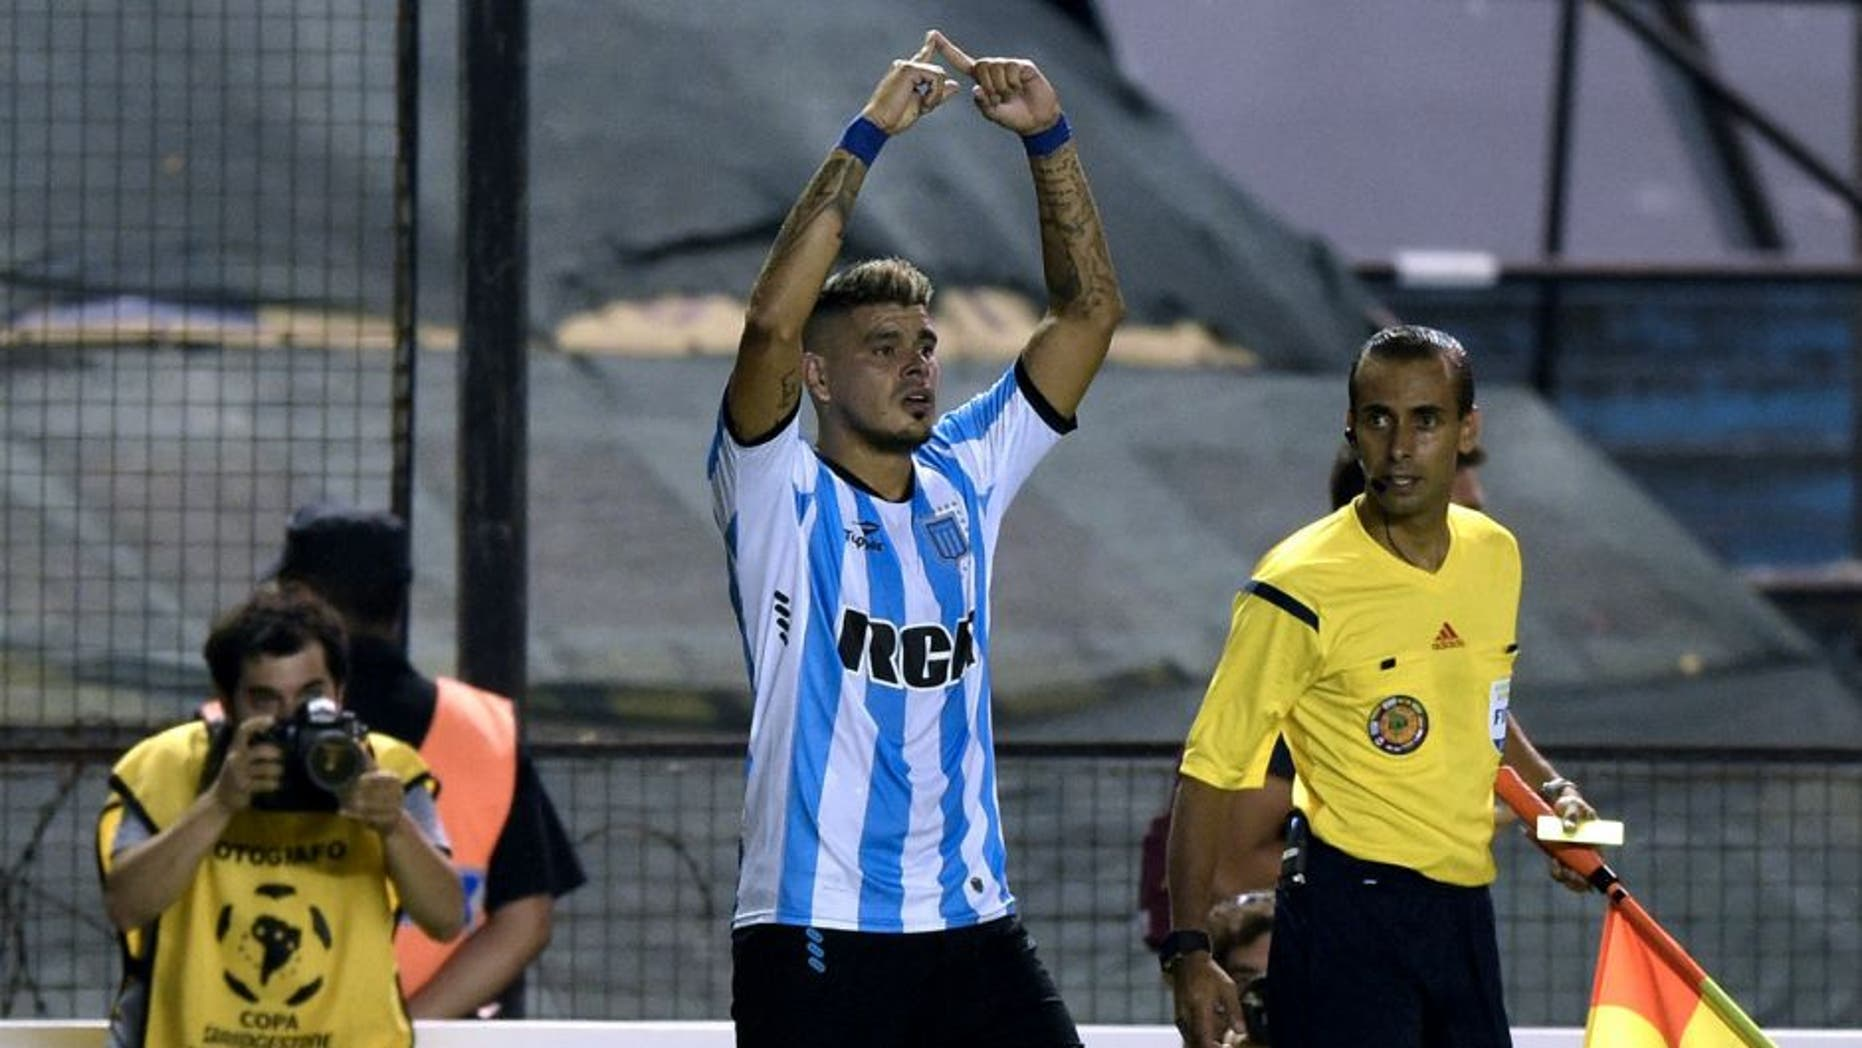 Argentina's Racing Club forward Gustavo Bou (C) celebrates after scoring a goal against Mexico's Puebla during the Copa Libertadores 2016 football match at Juan Domingo Peron stadium in Avellaneda, Buenos Aires, Argentina, on February 10, 2016. AFP PHOTO / JUAN MABROMATA / AFP / JUAN MABROMATA (Photo credit should read JUAN MABROMATA/AFP/Getty Images)